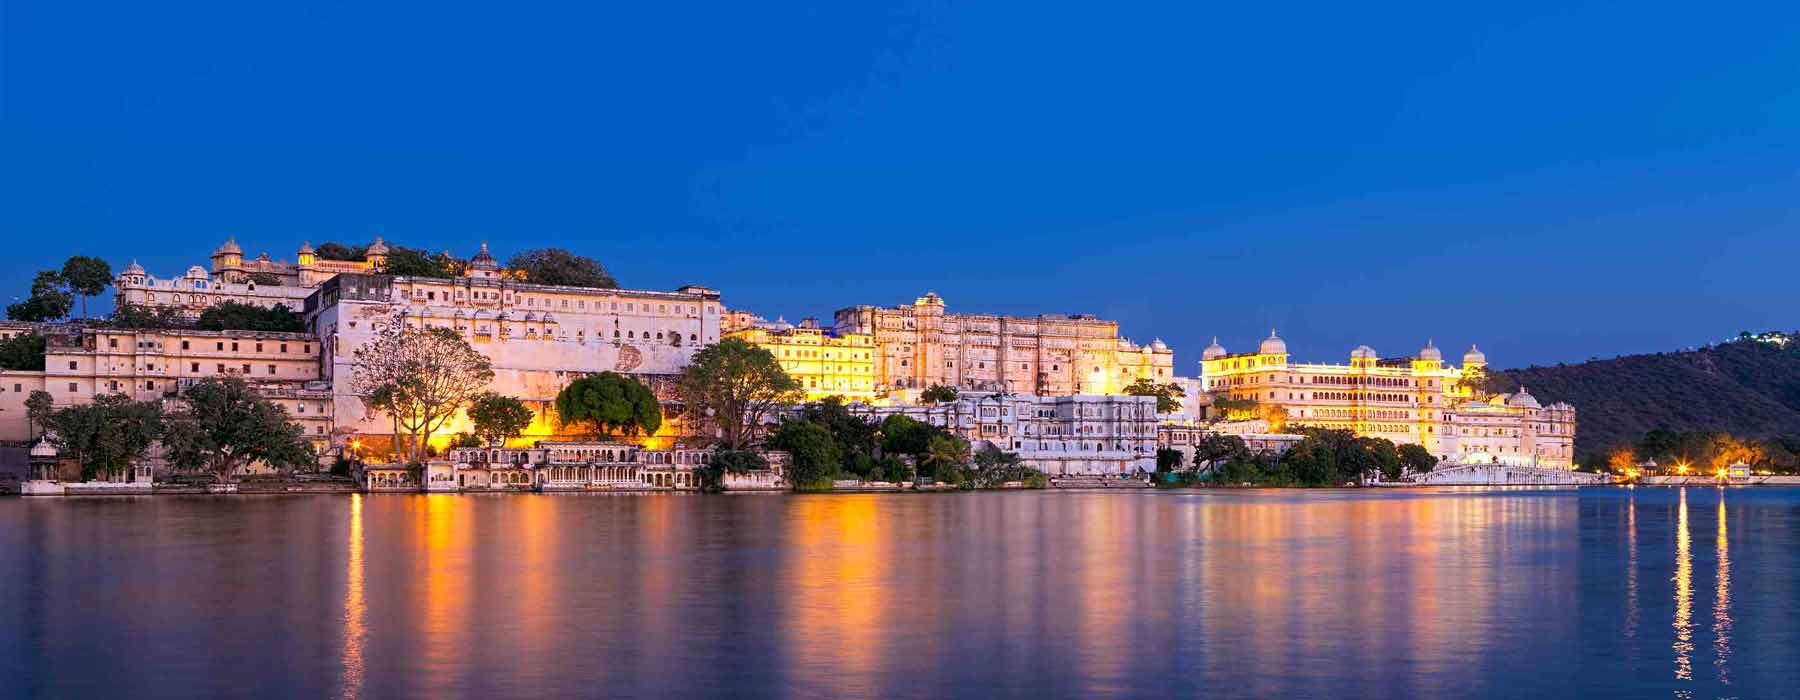 Udaipur The City Of Lakes Among The Top 15 Urban Destinations